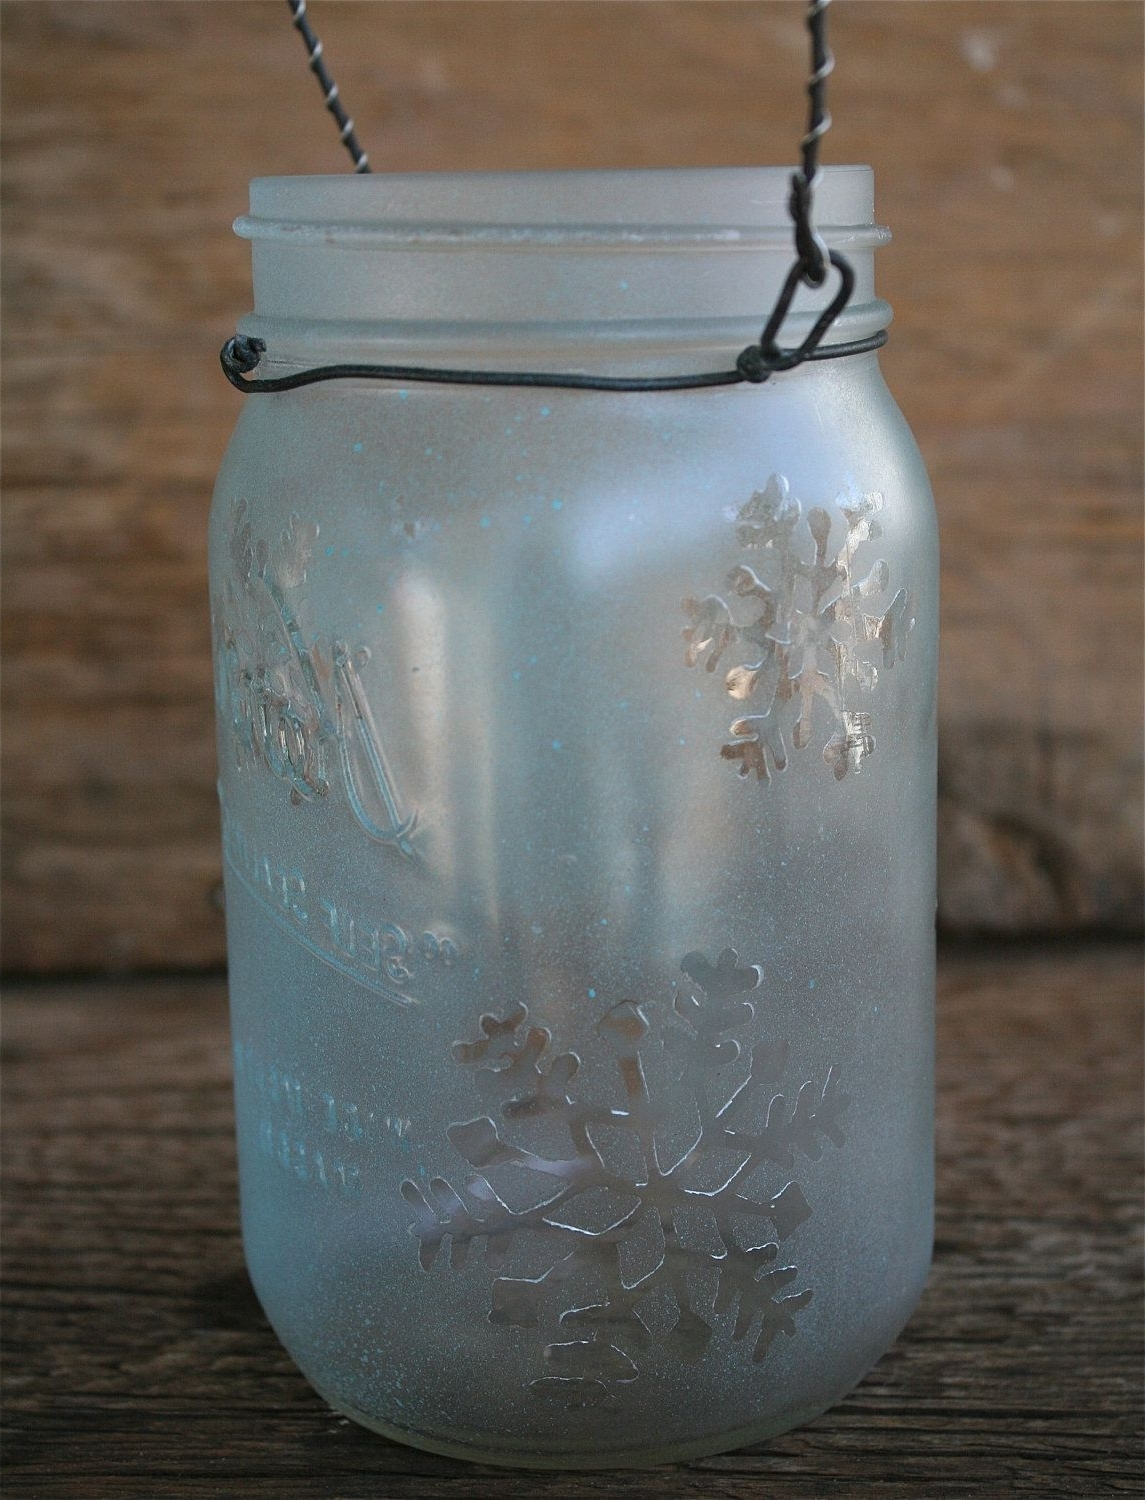 Most Recent Outdoor Jar Lanterns In Mason Jar Lantern, Snowflakes Christmas And Winter Decoration (View 16 of 20)